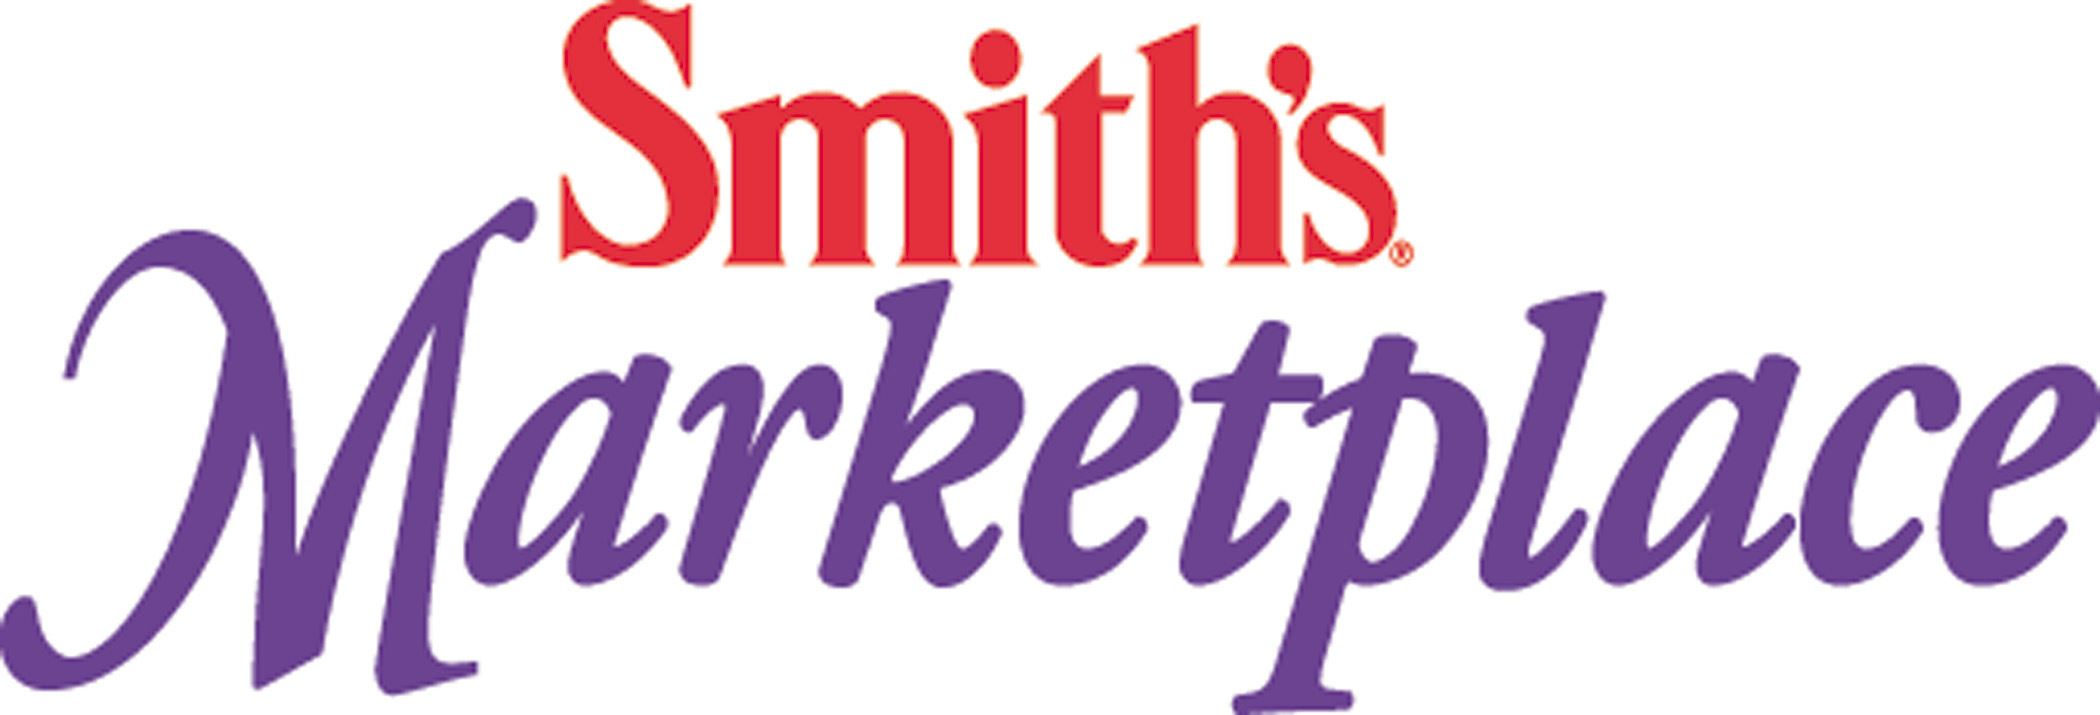 Smith's Marketplace logo Opens in new window